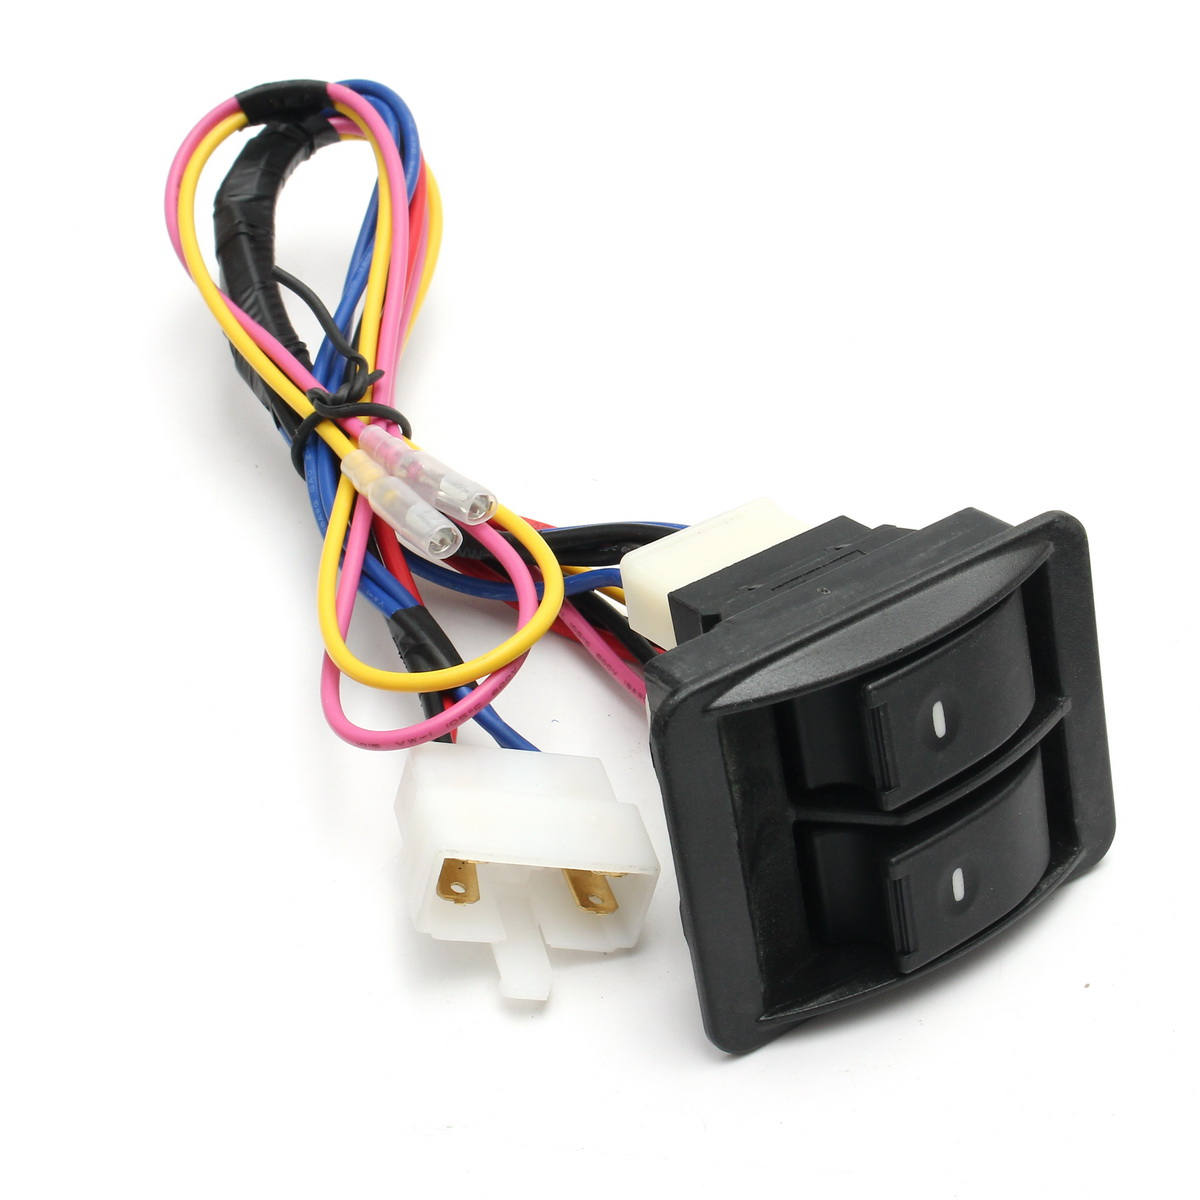 hight resolution of universal 12v power window glass lock rocker lift switch wiring harness kits for chevrolet ford hyundai nissan toyota vw in car switches relays from